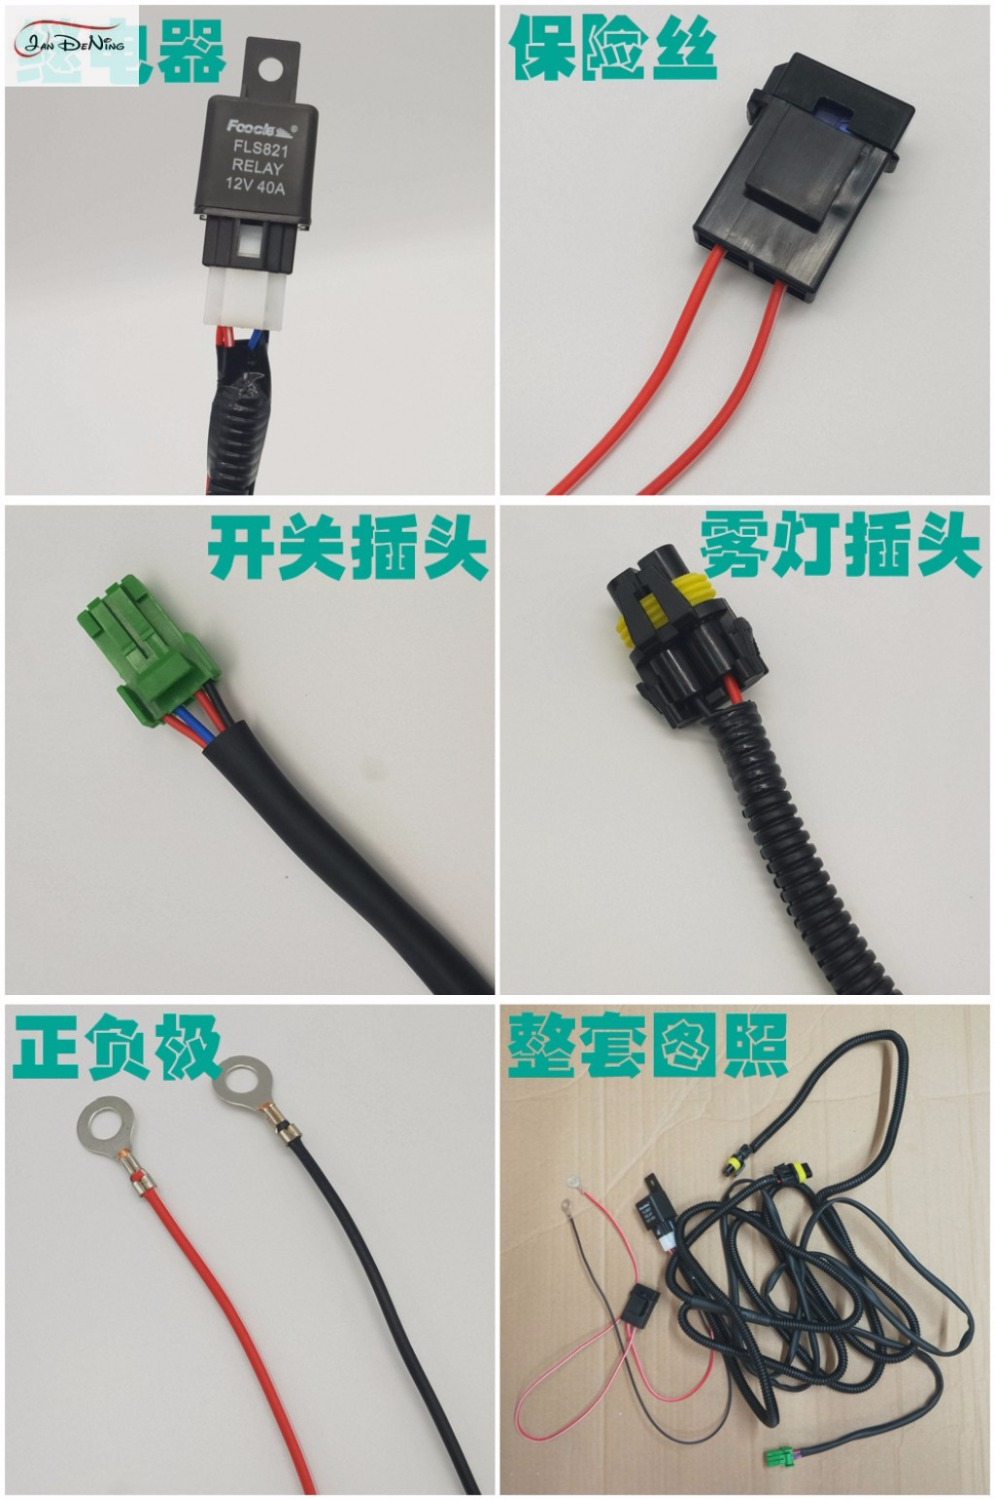 Jandening For Fog Light Lamp Wiring Harness Kit Wire Fuse Switch Relay H11 Bulb Toyota Honda Nissan Vehicles In From Automobiles